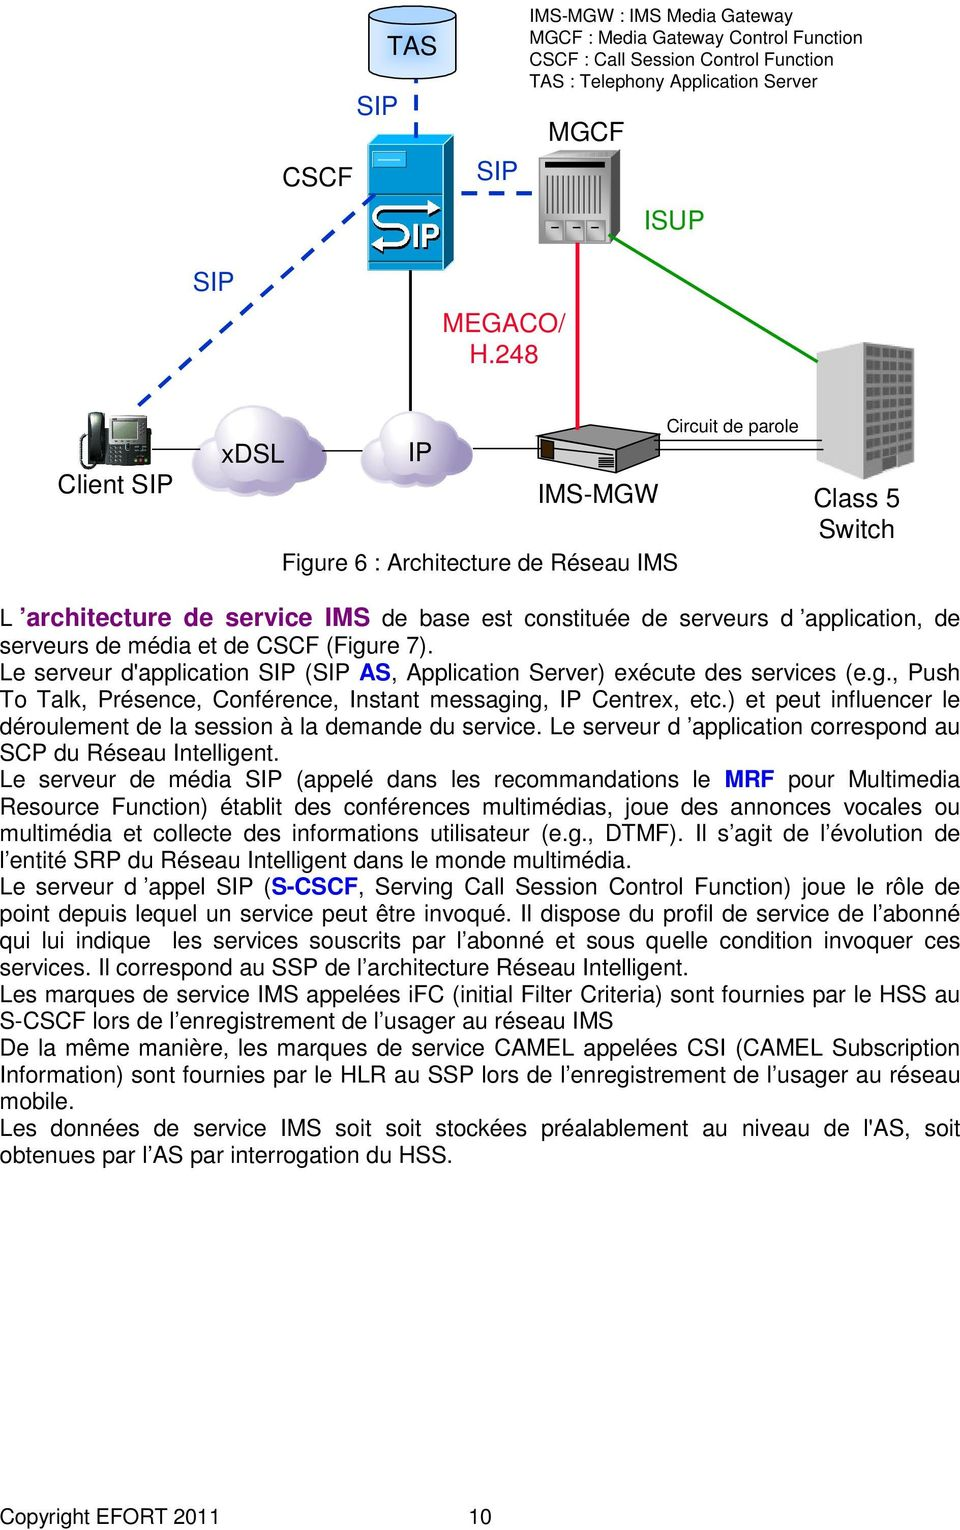 média et de CSCF (Figure 7). Le serveur d'application SIP (SIP AS, Application Server) exécute des services (e.g., Push To Talk, Présence, Conférence, Instant messaging, IP Centrex, etc.